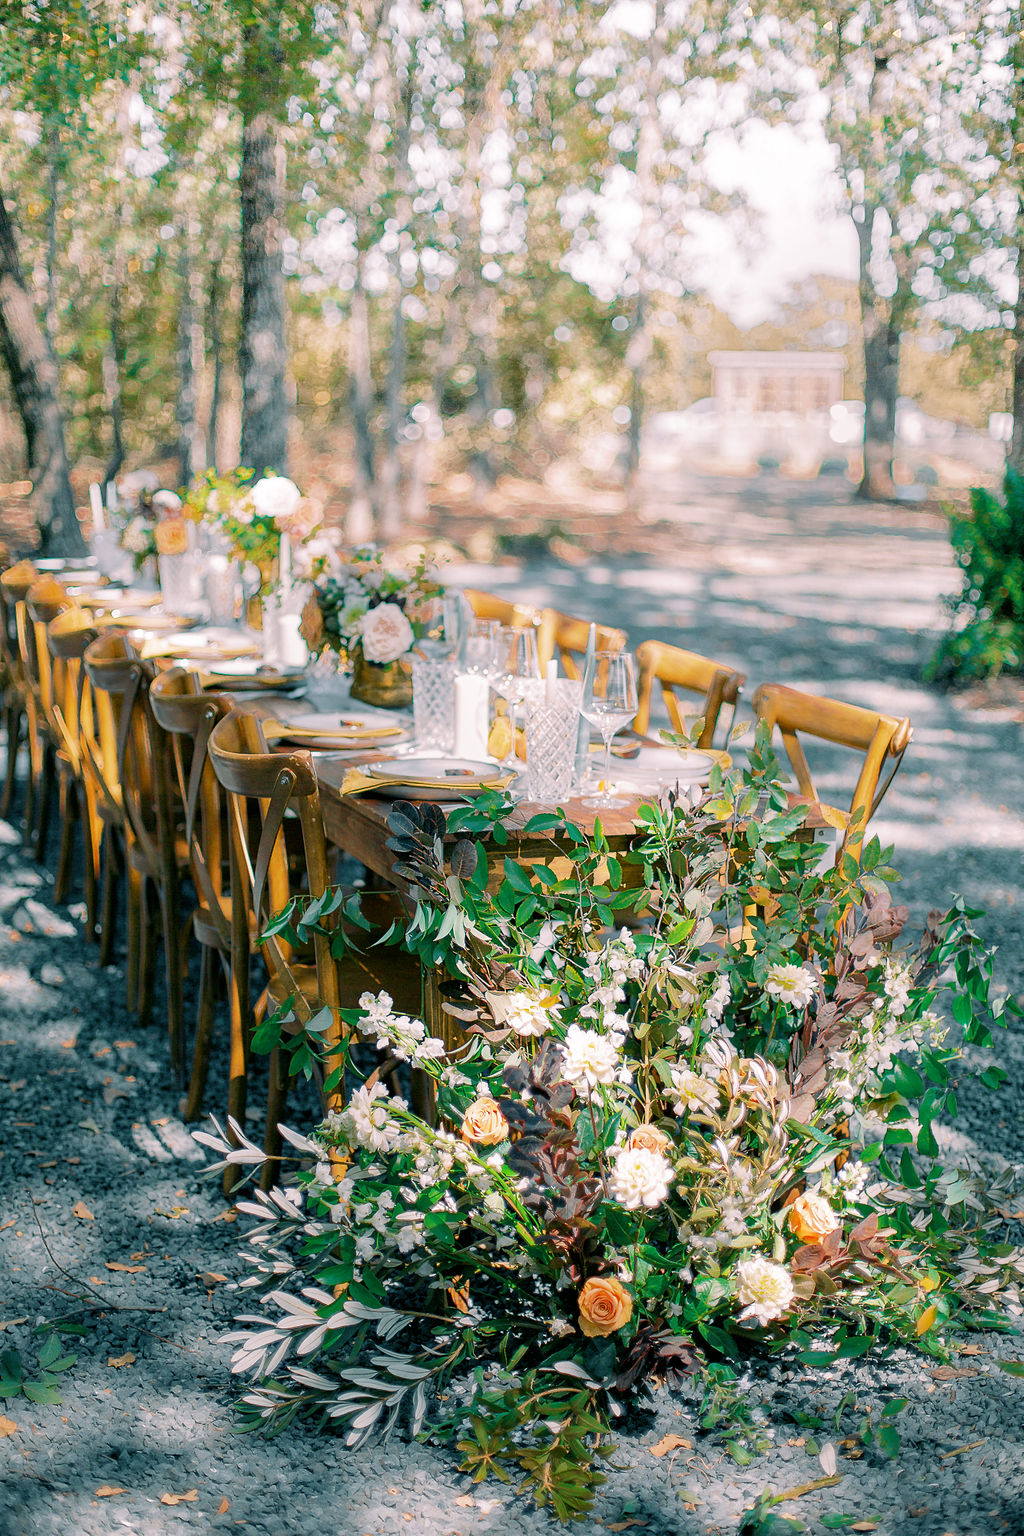 Outdoor wedding tablescape: Ethereal Wedding Inspiration at The White Sparrow